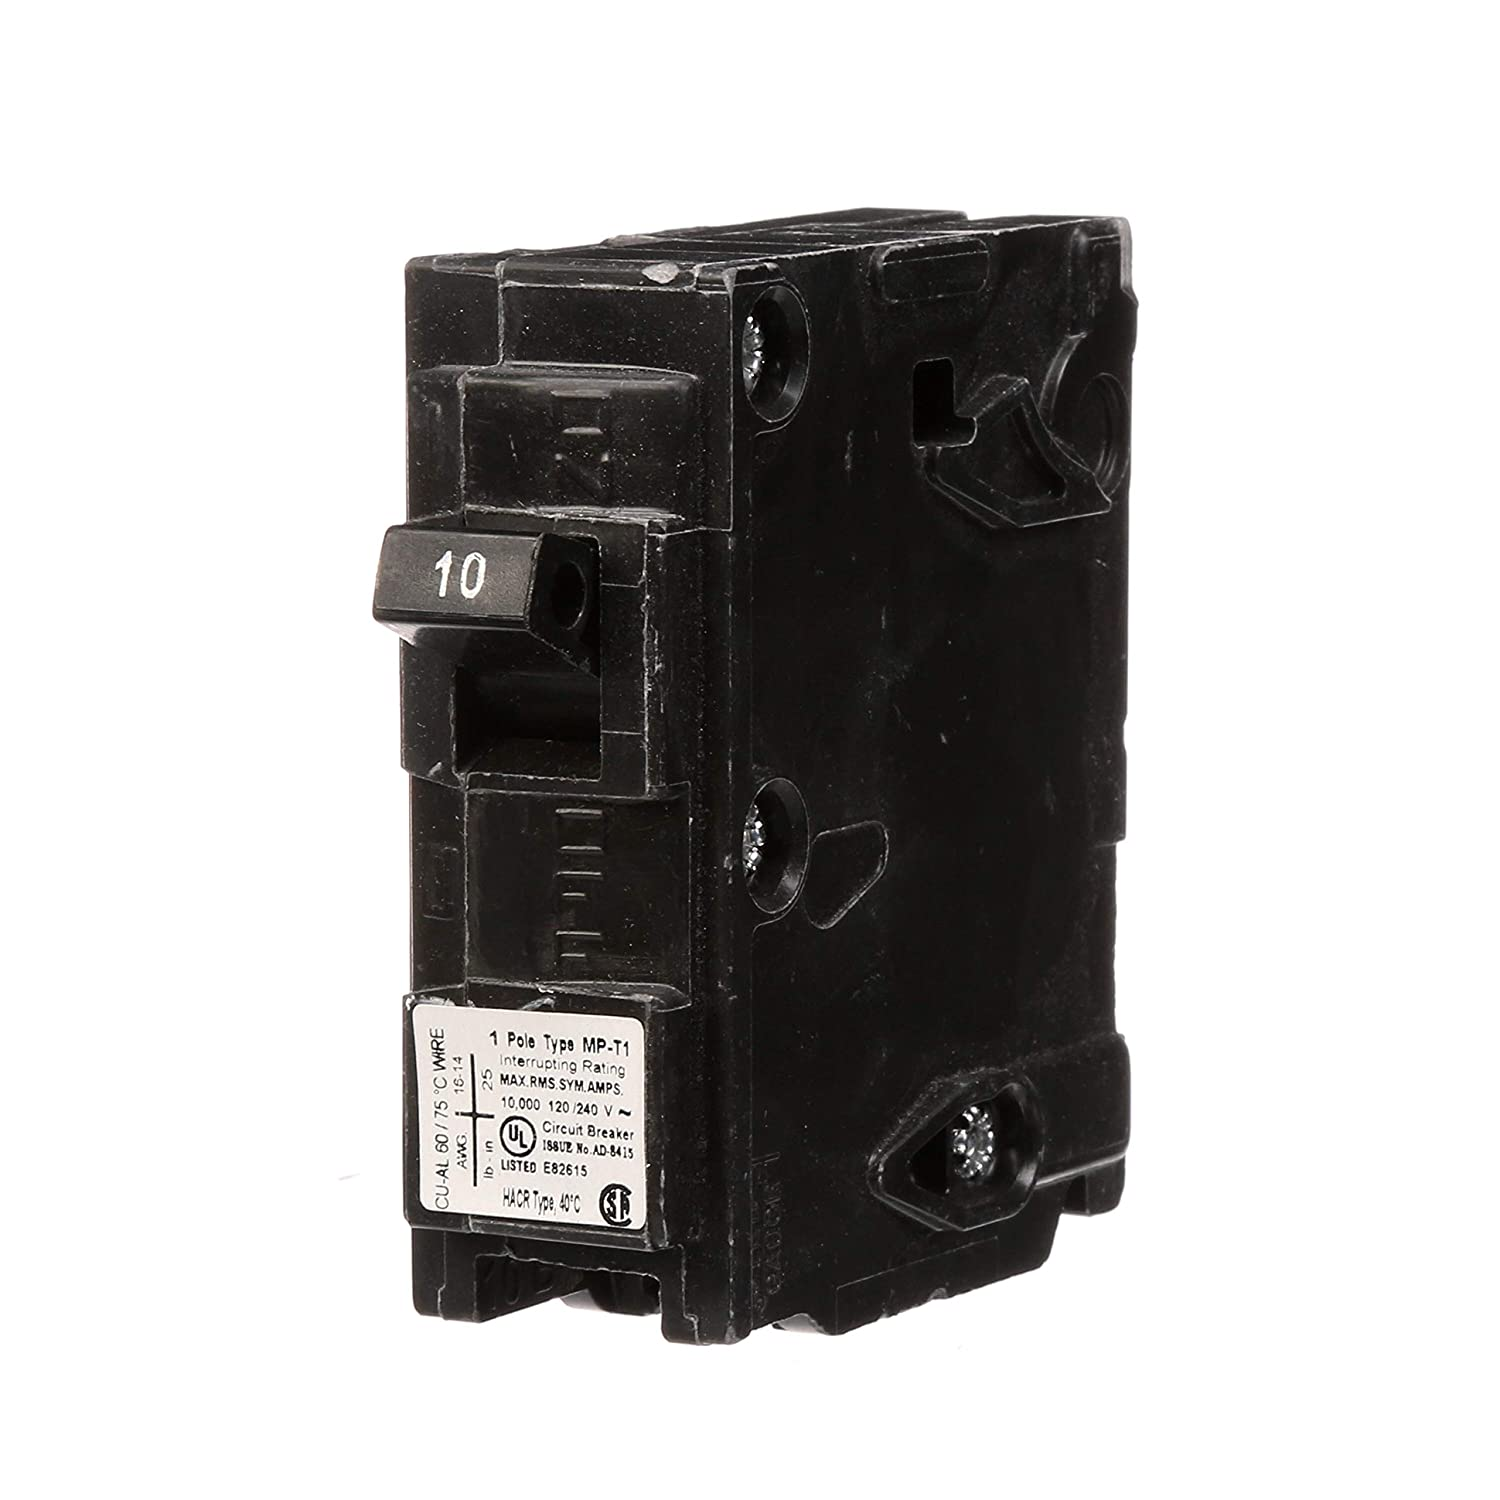 MP140 40-Amp Single Pole Type MP-T Circuit Breaker